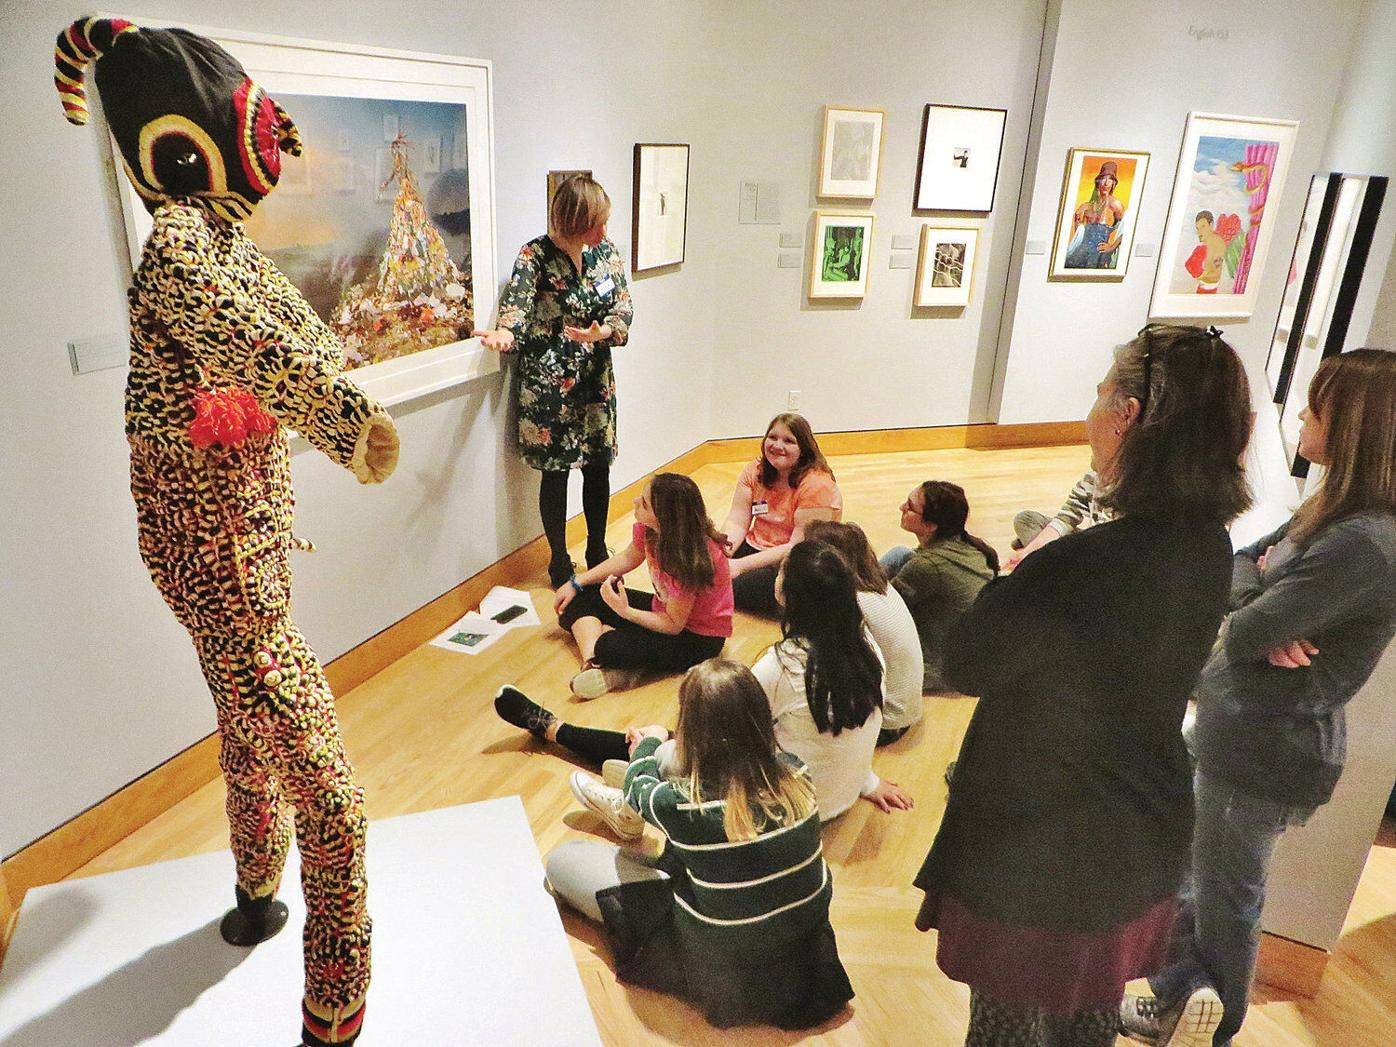 Classroom of the Week: Creating a culture of respect through art and middle school